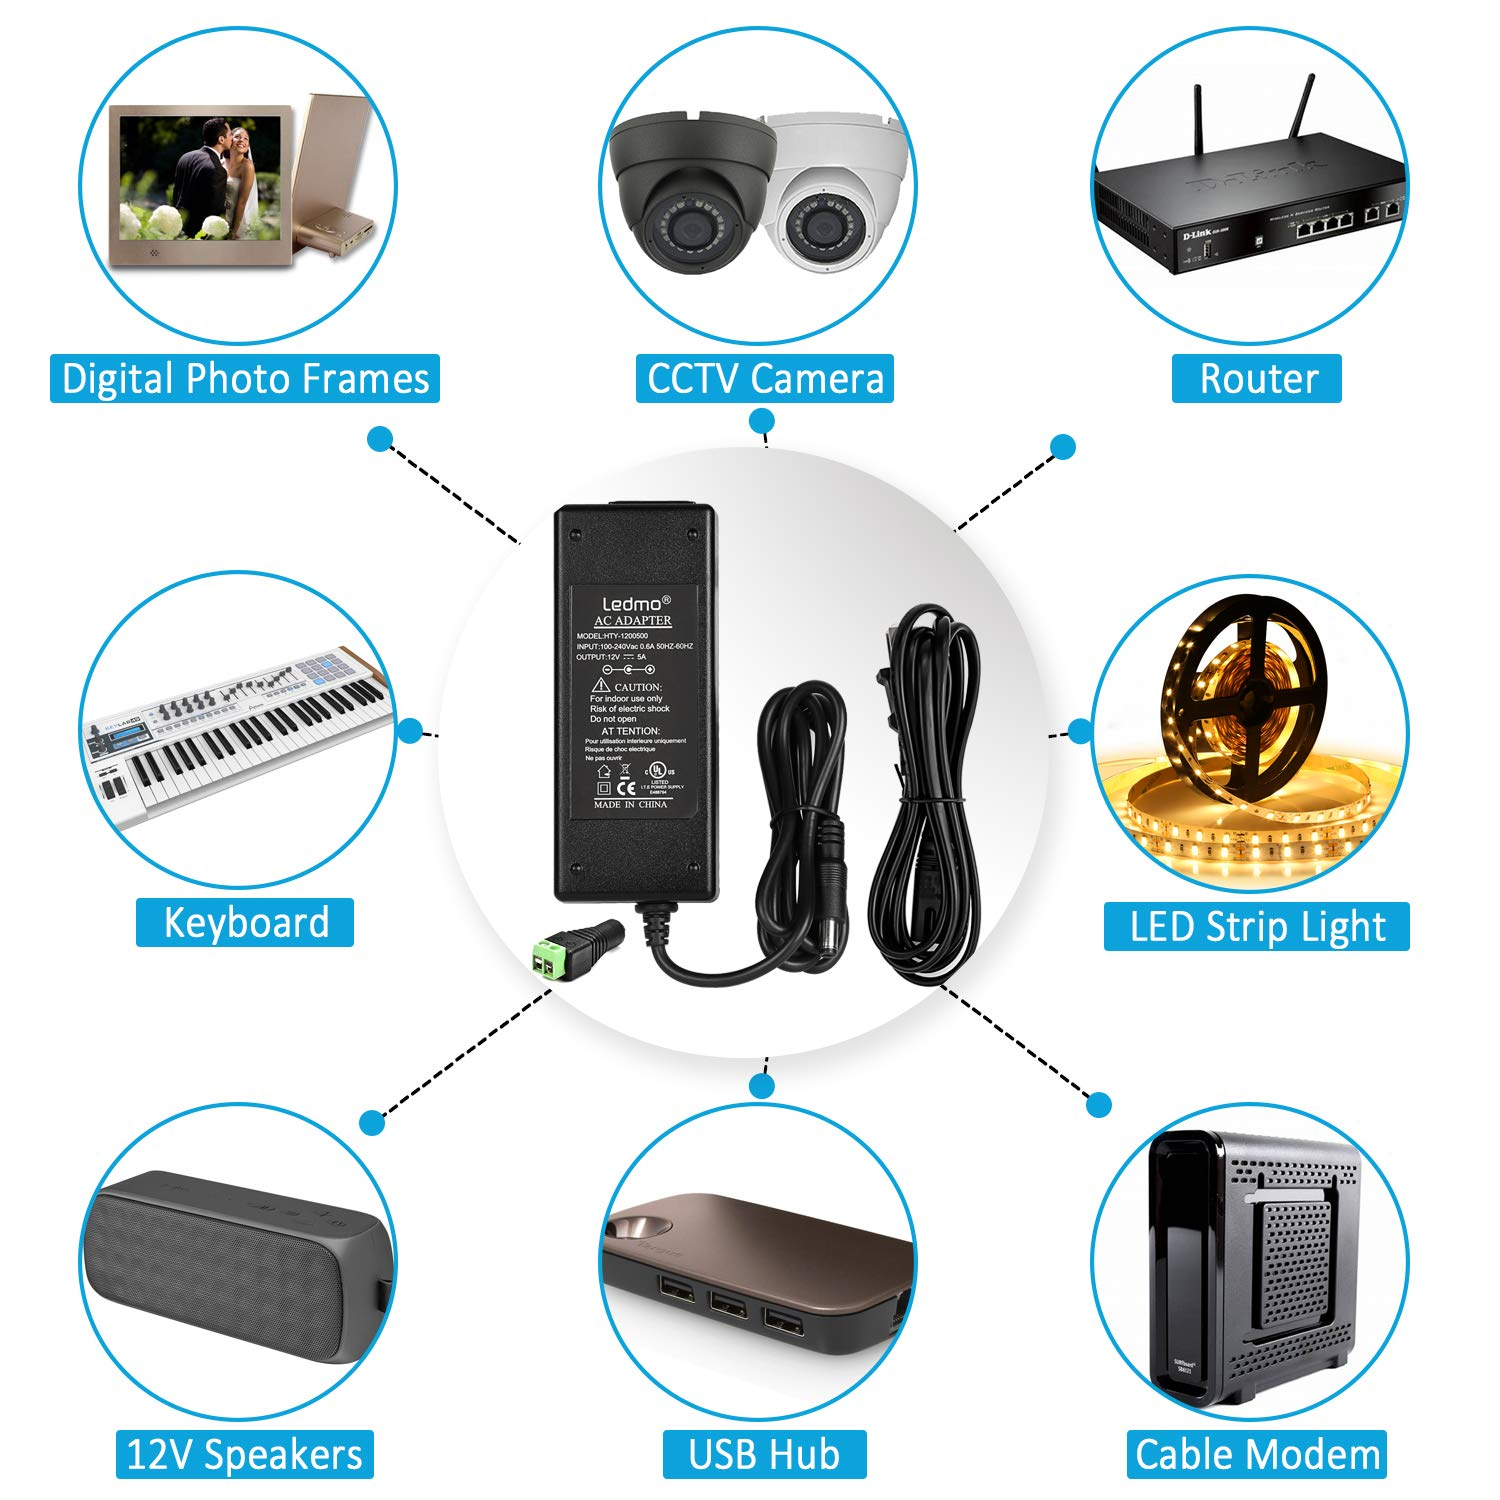 LED Power Supply, LEDMO Power Adapter, AC 100-240V to DC 12V Transformers, Power Supply for LED Strip Light, 60W Max, 5A